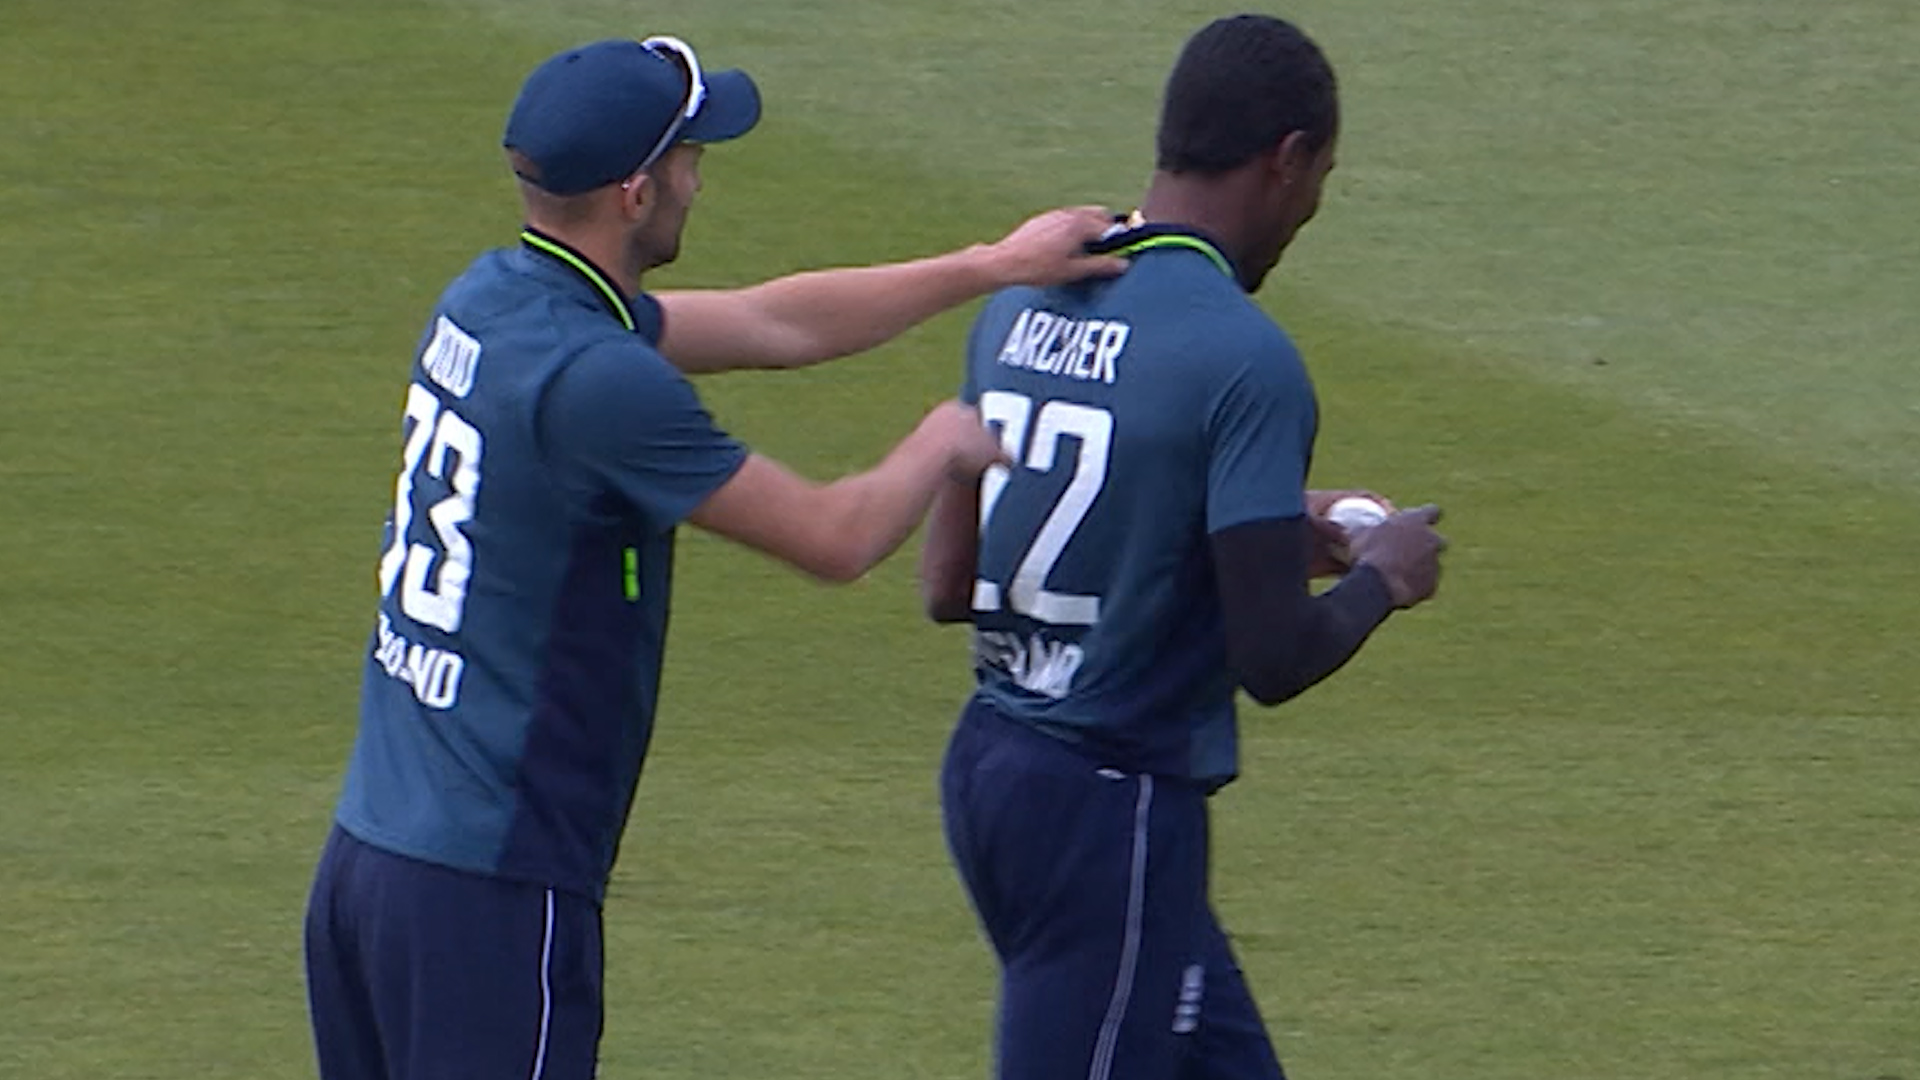 England v Pakistan: Jofra Archer forgets to take label out of shirt